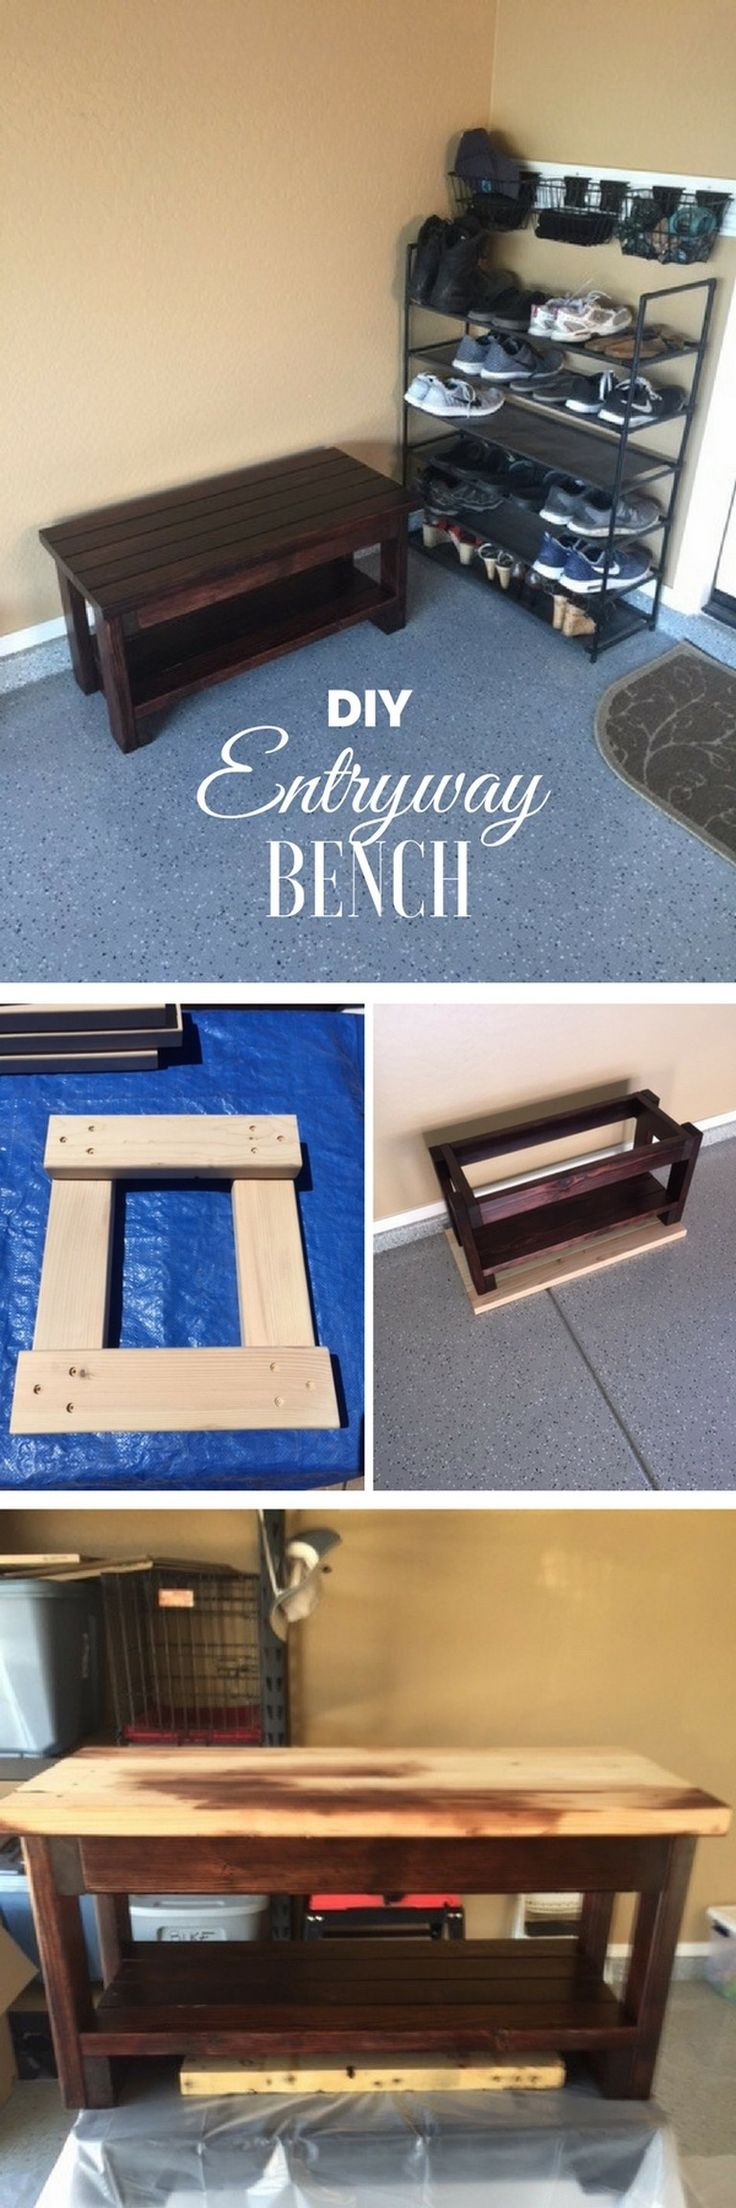 10+ Simple DIY 2x4 Wood Projects You Can Make Even from